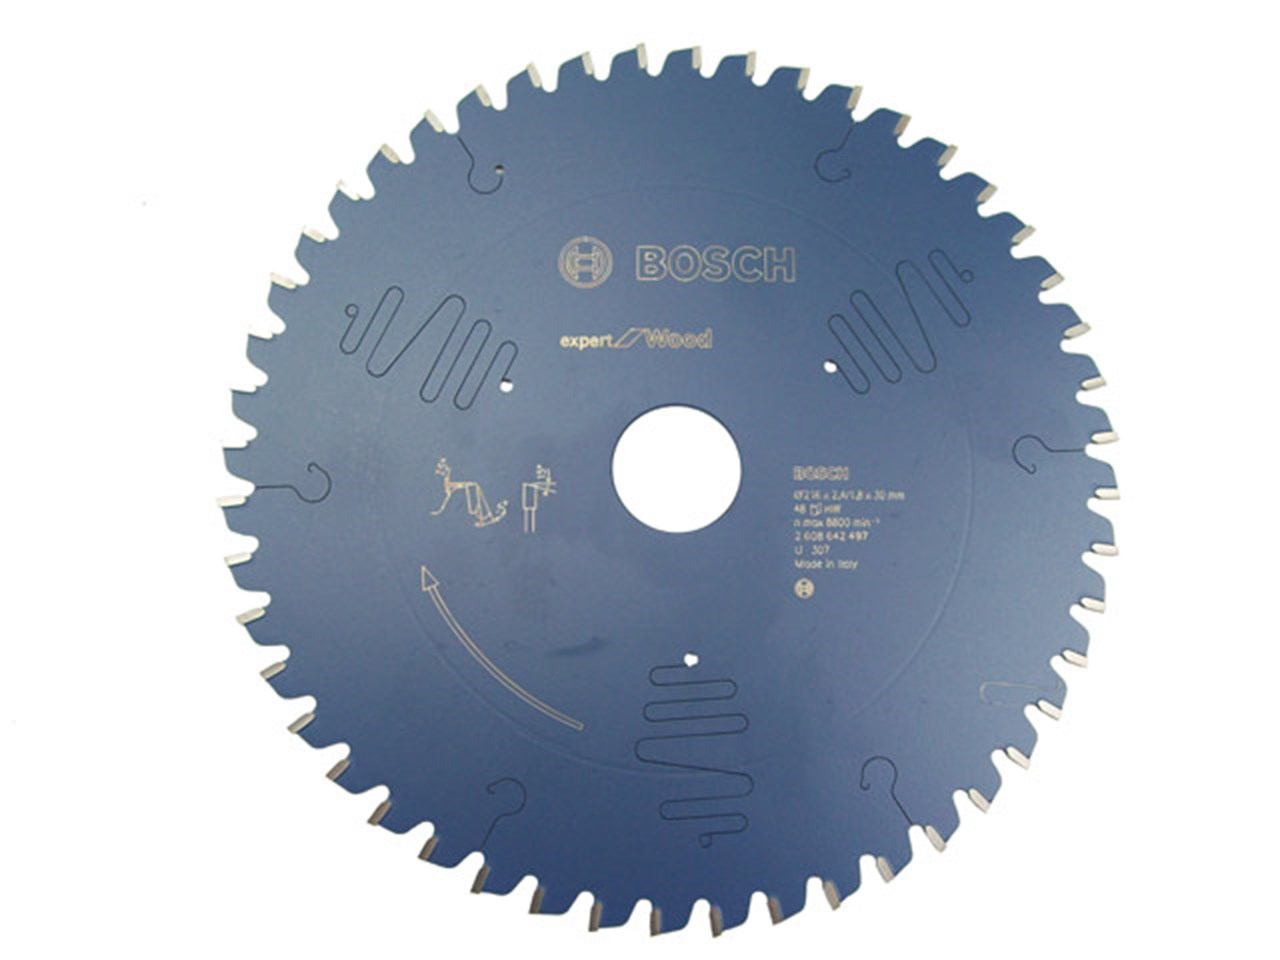 Bosch 2608642497 expert wood circular saw blade 216mm x 30mm x 48t greentooth Image collections